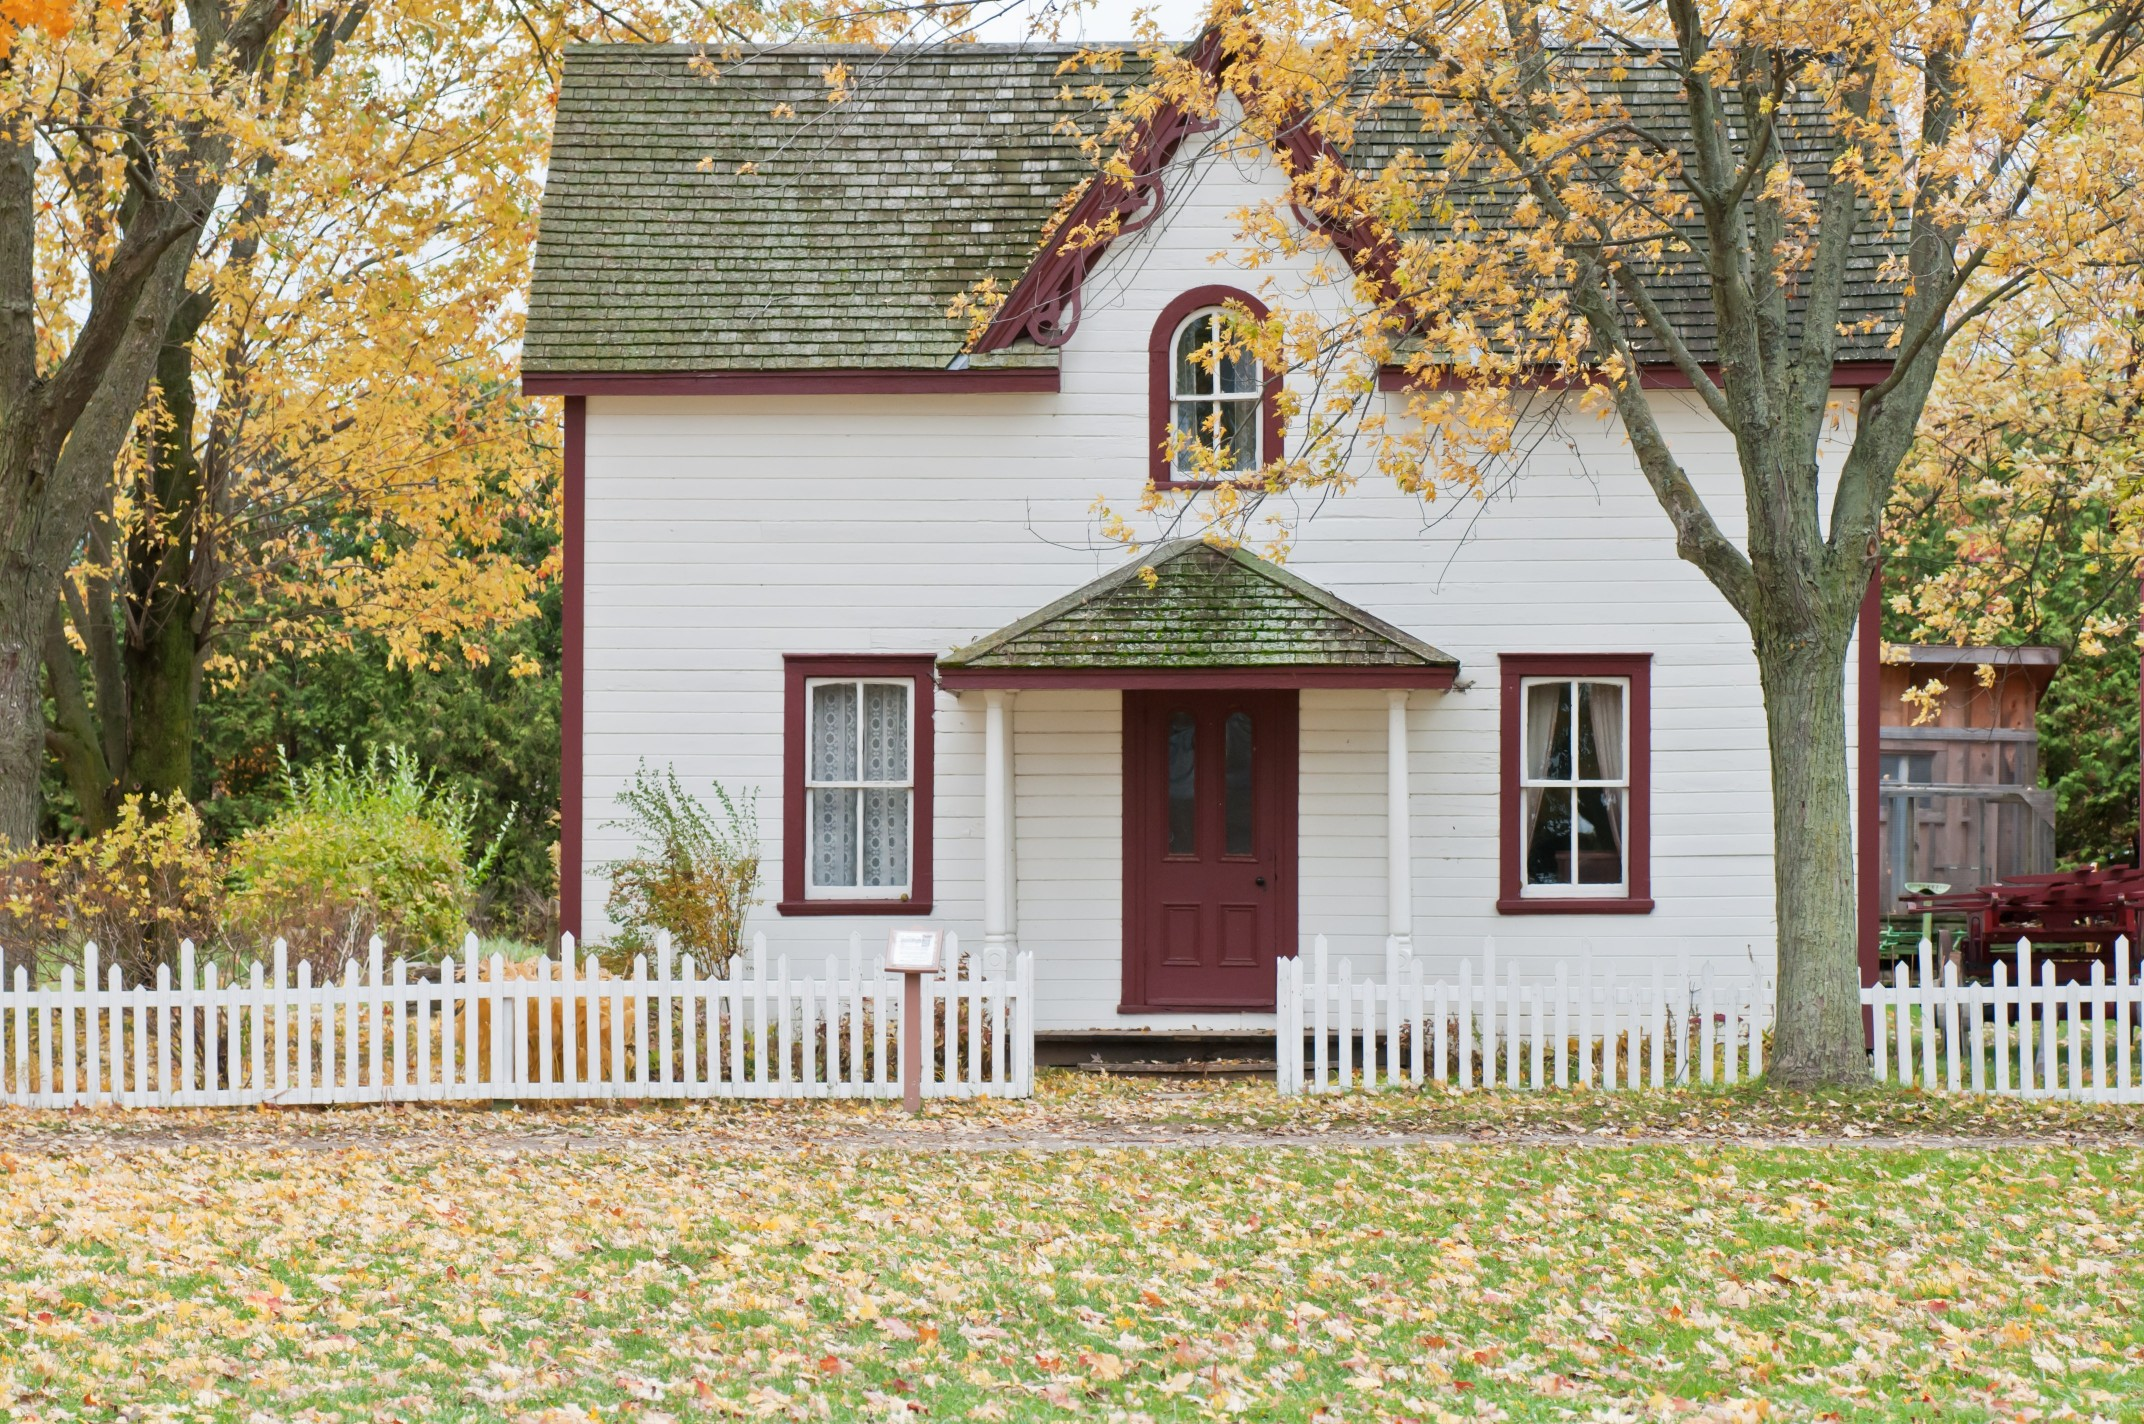 Costly home improvement mistakes you don't want to make